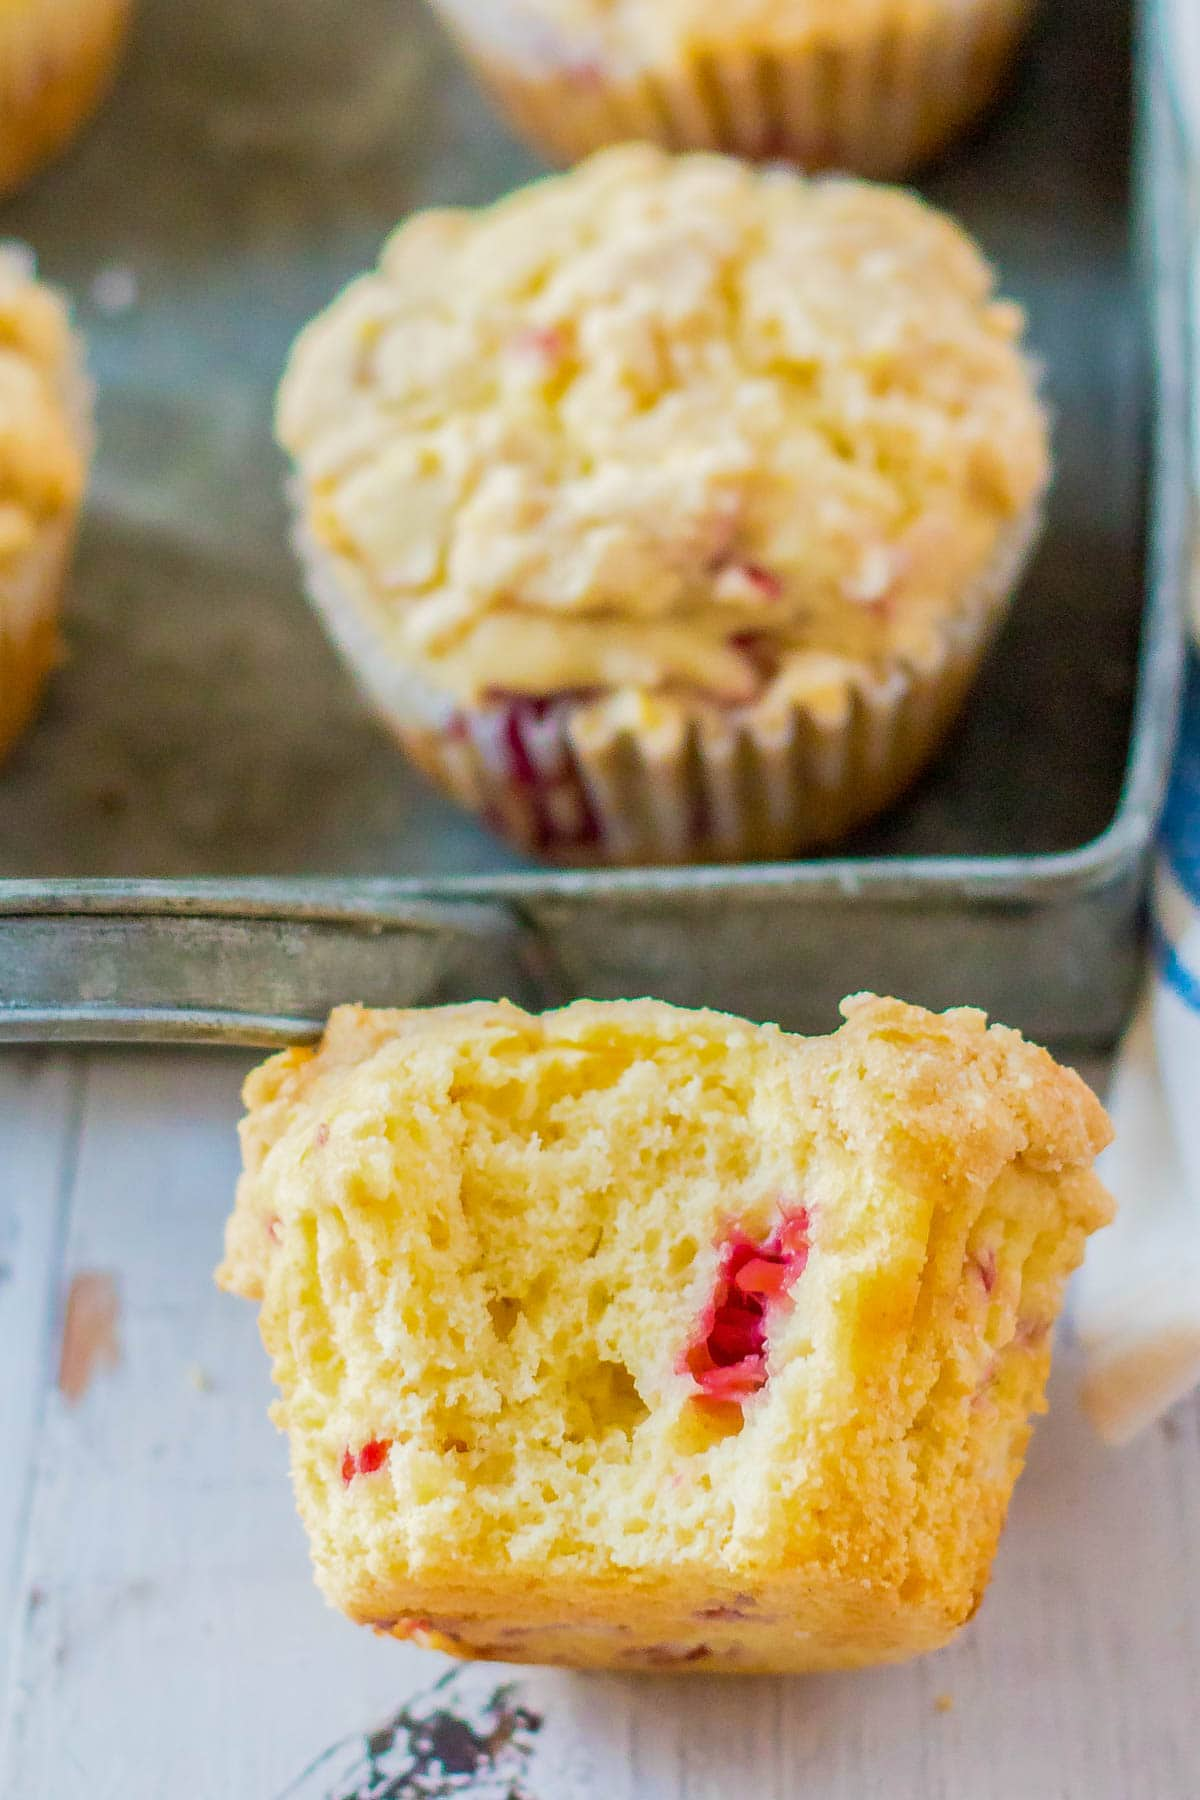 rasberry muffins with a bite taken out